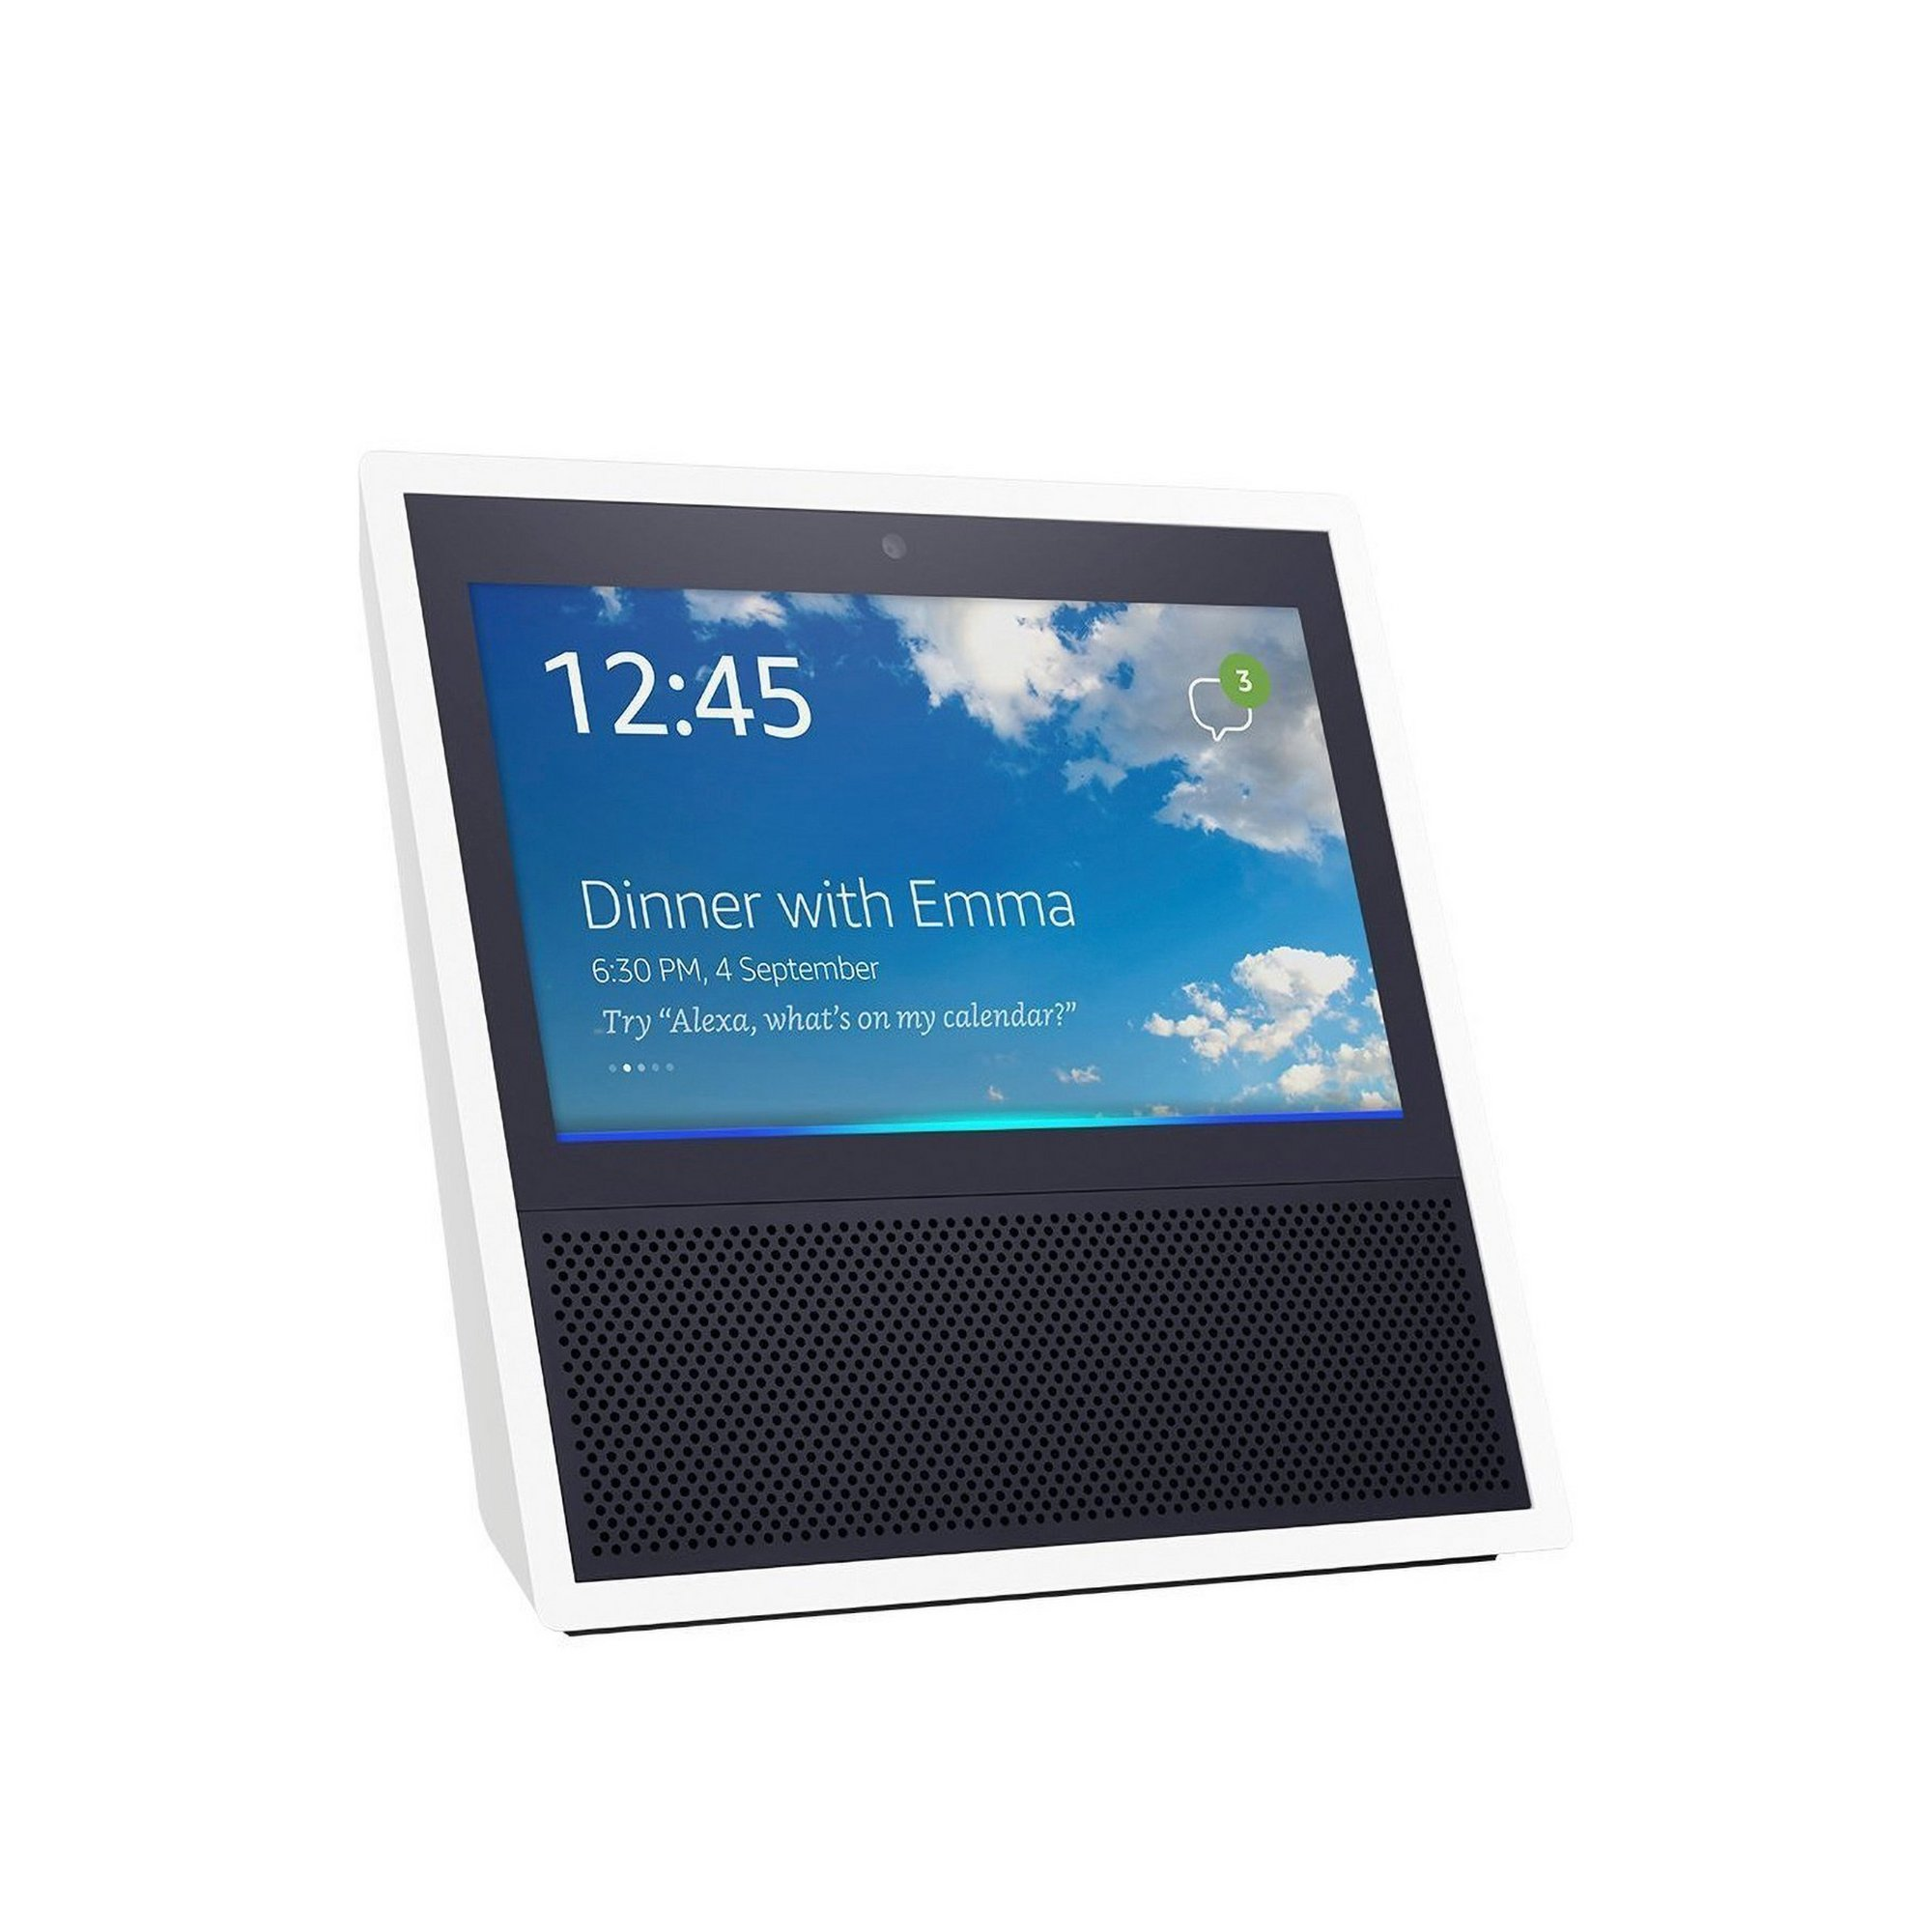 Image of Amazon Echo Show